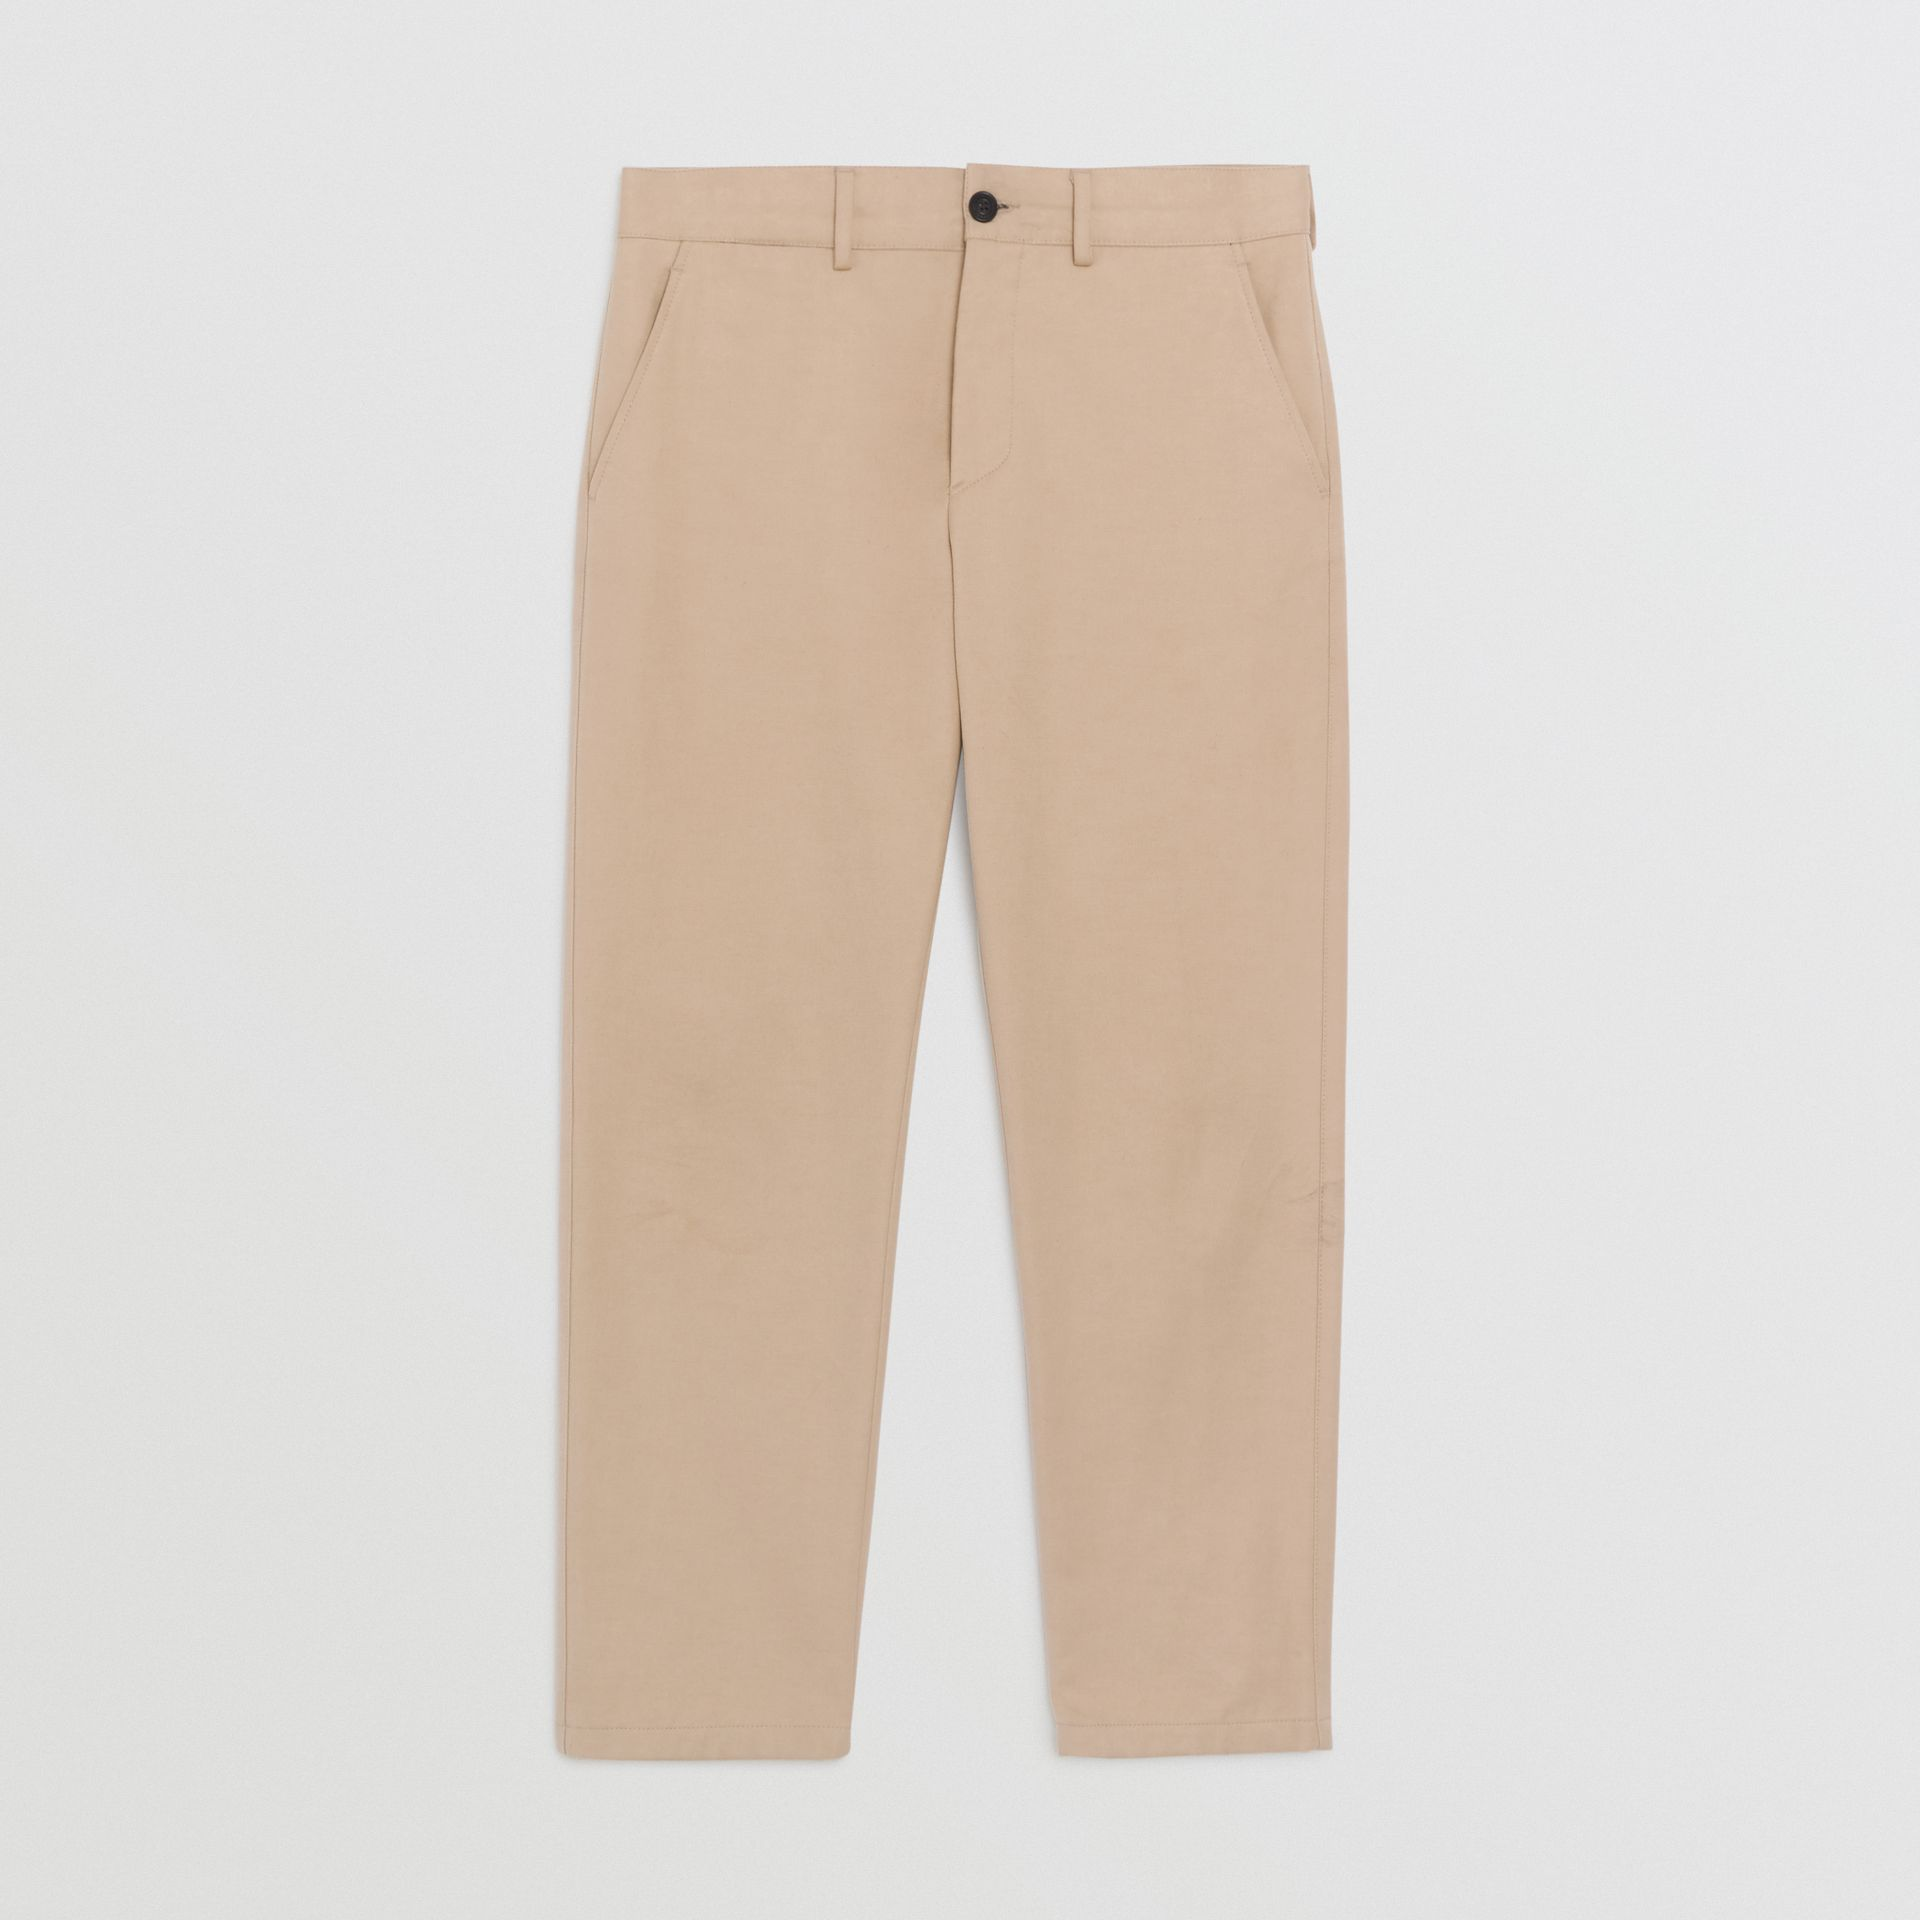 Slim Fit Cotton Blend Chinos in Stone - Men | Burberry - gallery image 3